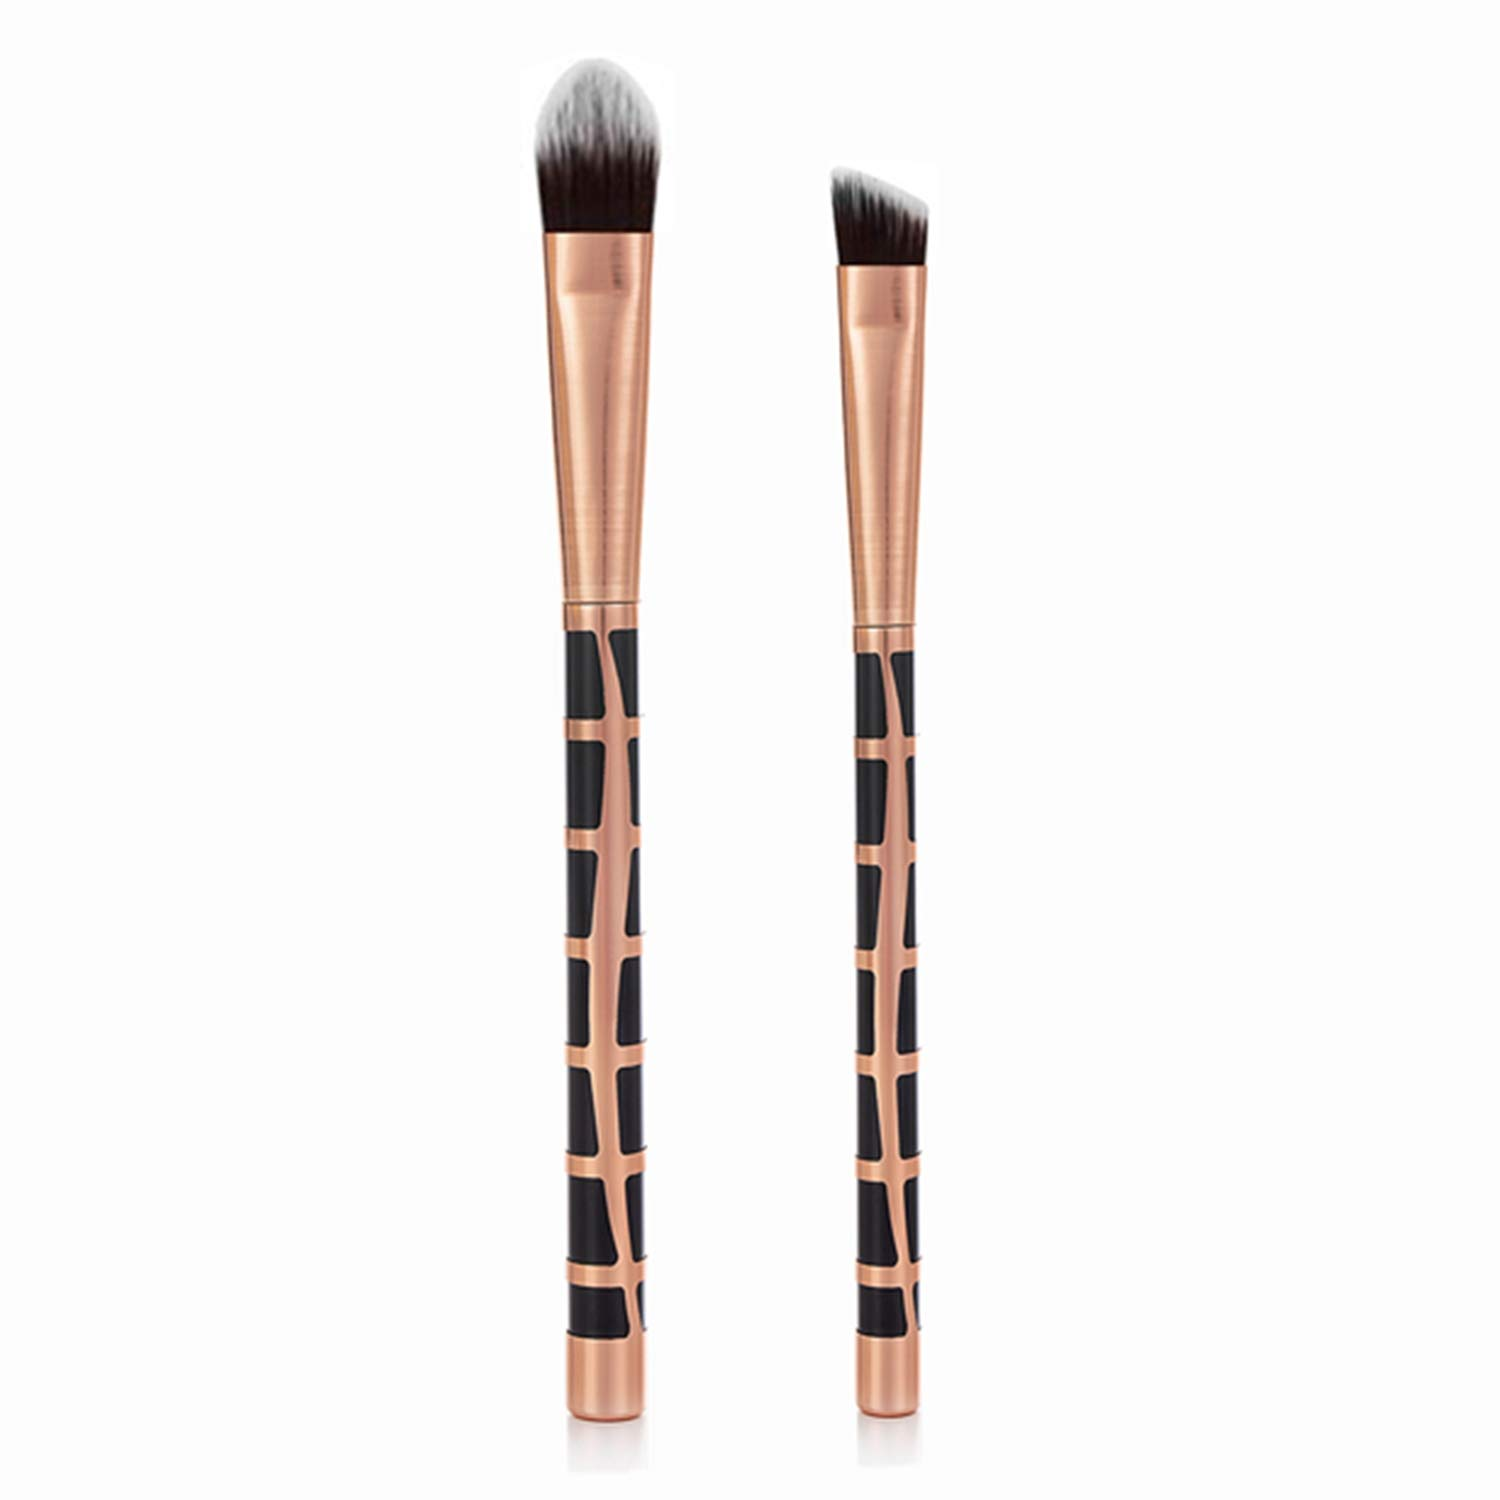 2Pcs Precision Concealer Makeup Translated Brushes Eye At the price of surprise Under for Blending